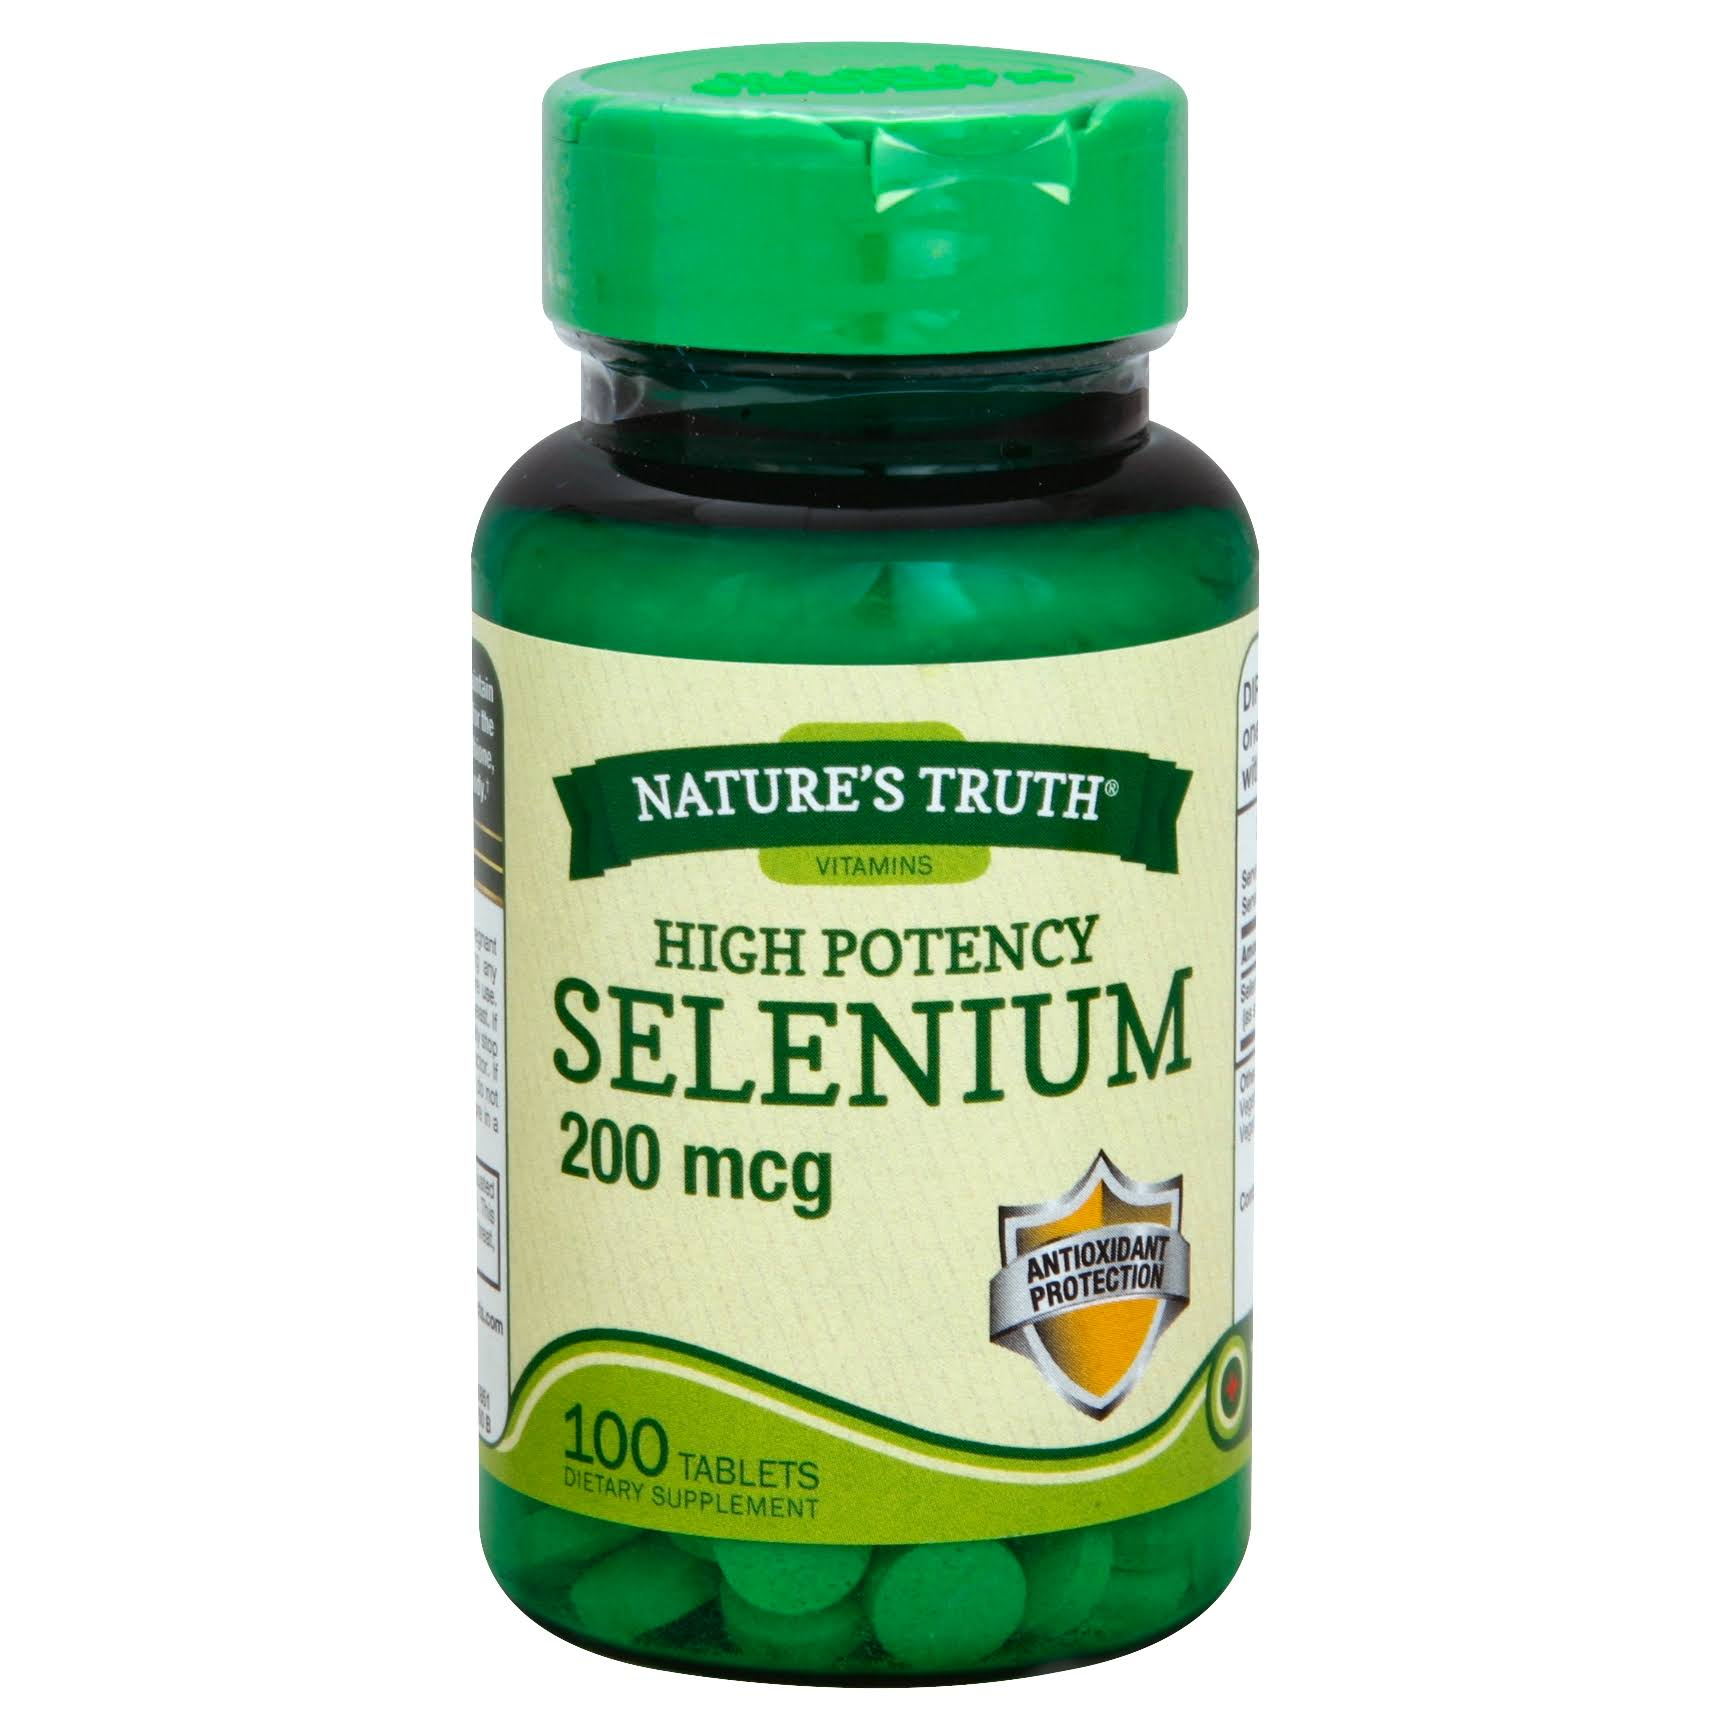 Natures Truth Selenium Supplements - 200mcg, 100ct